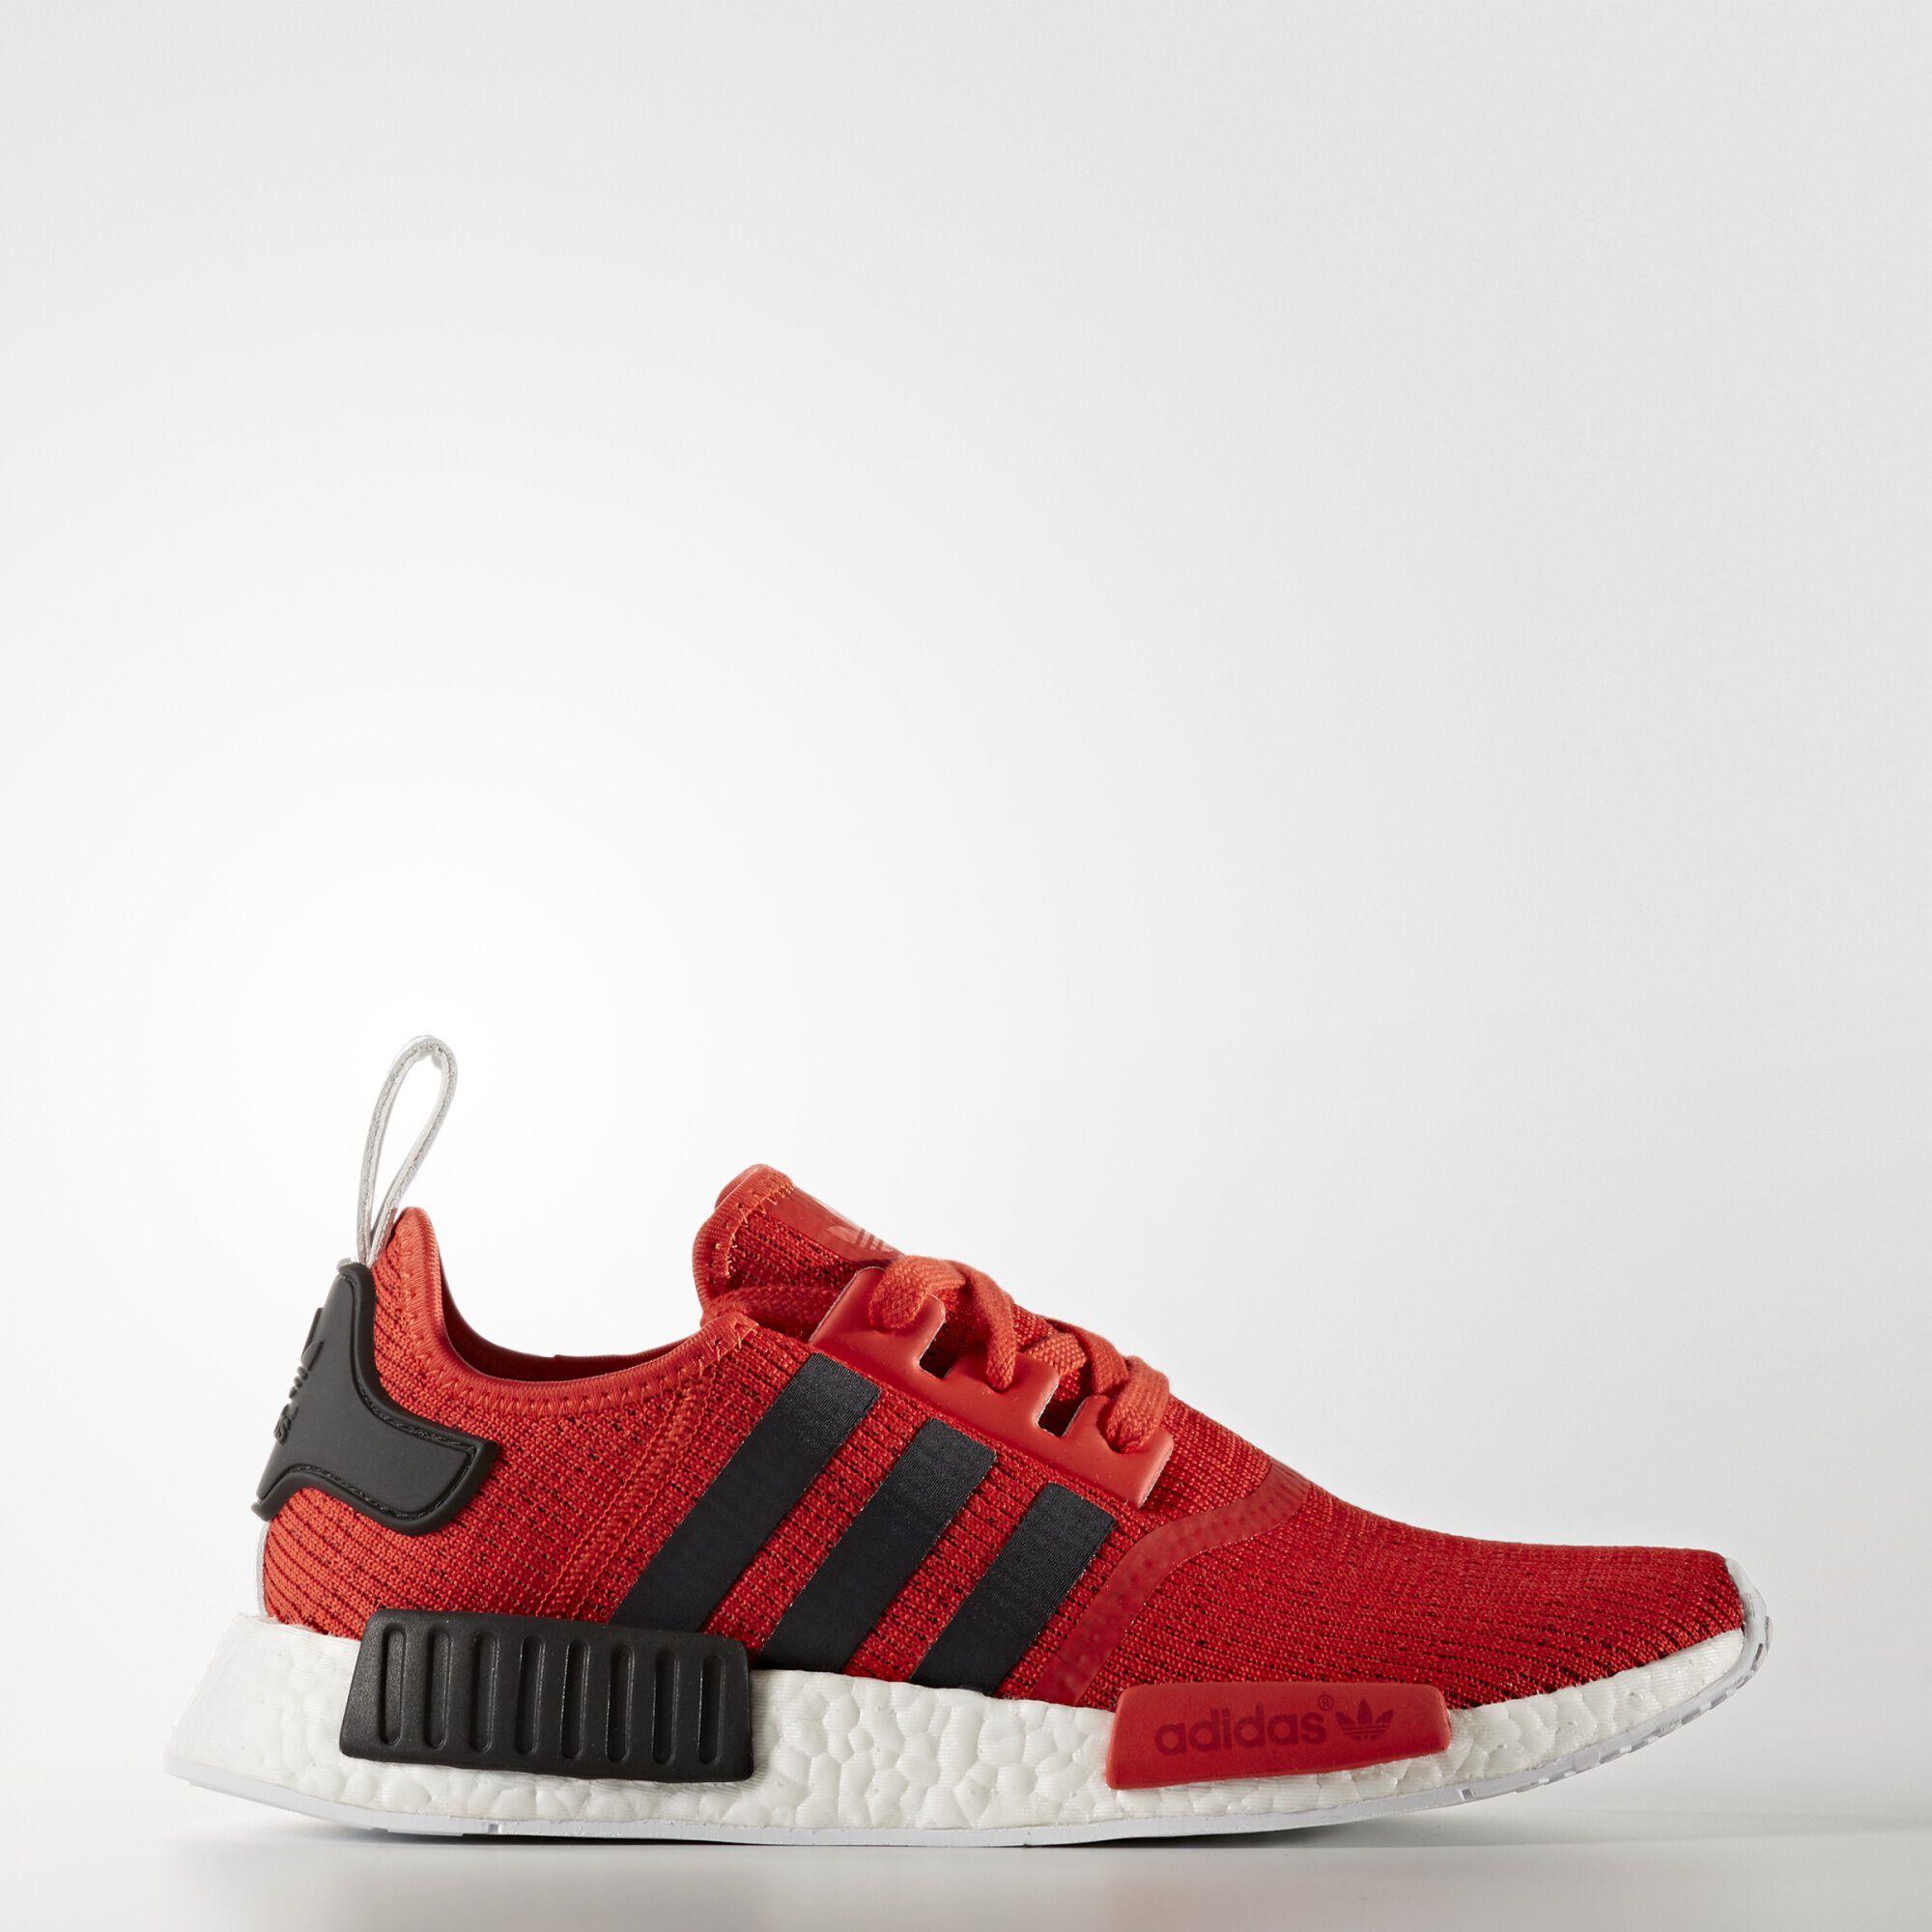 Adidas Shoes Black And Red